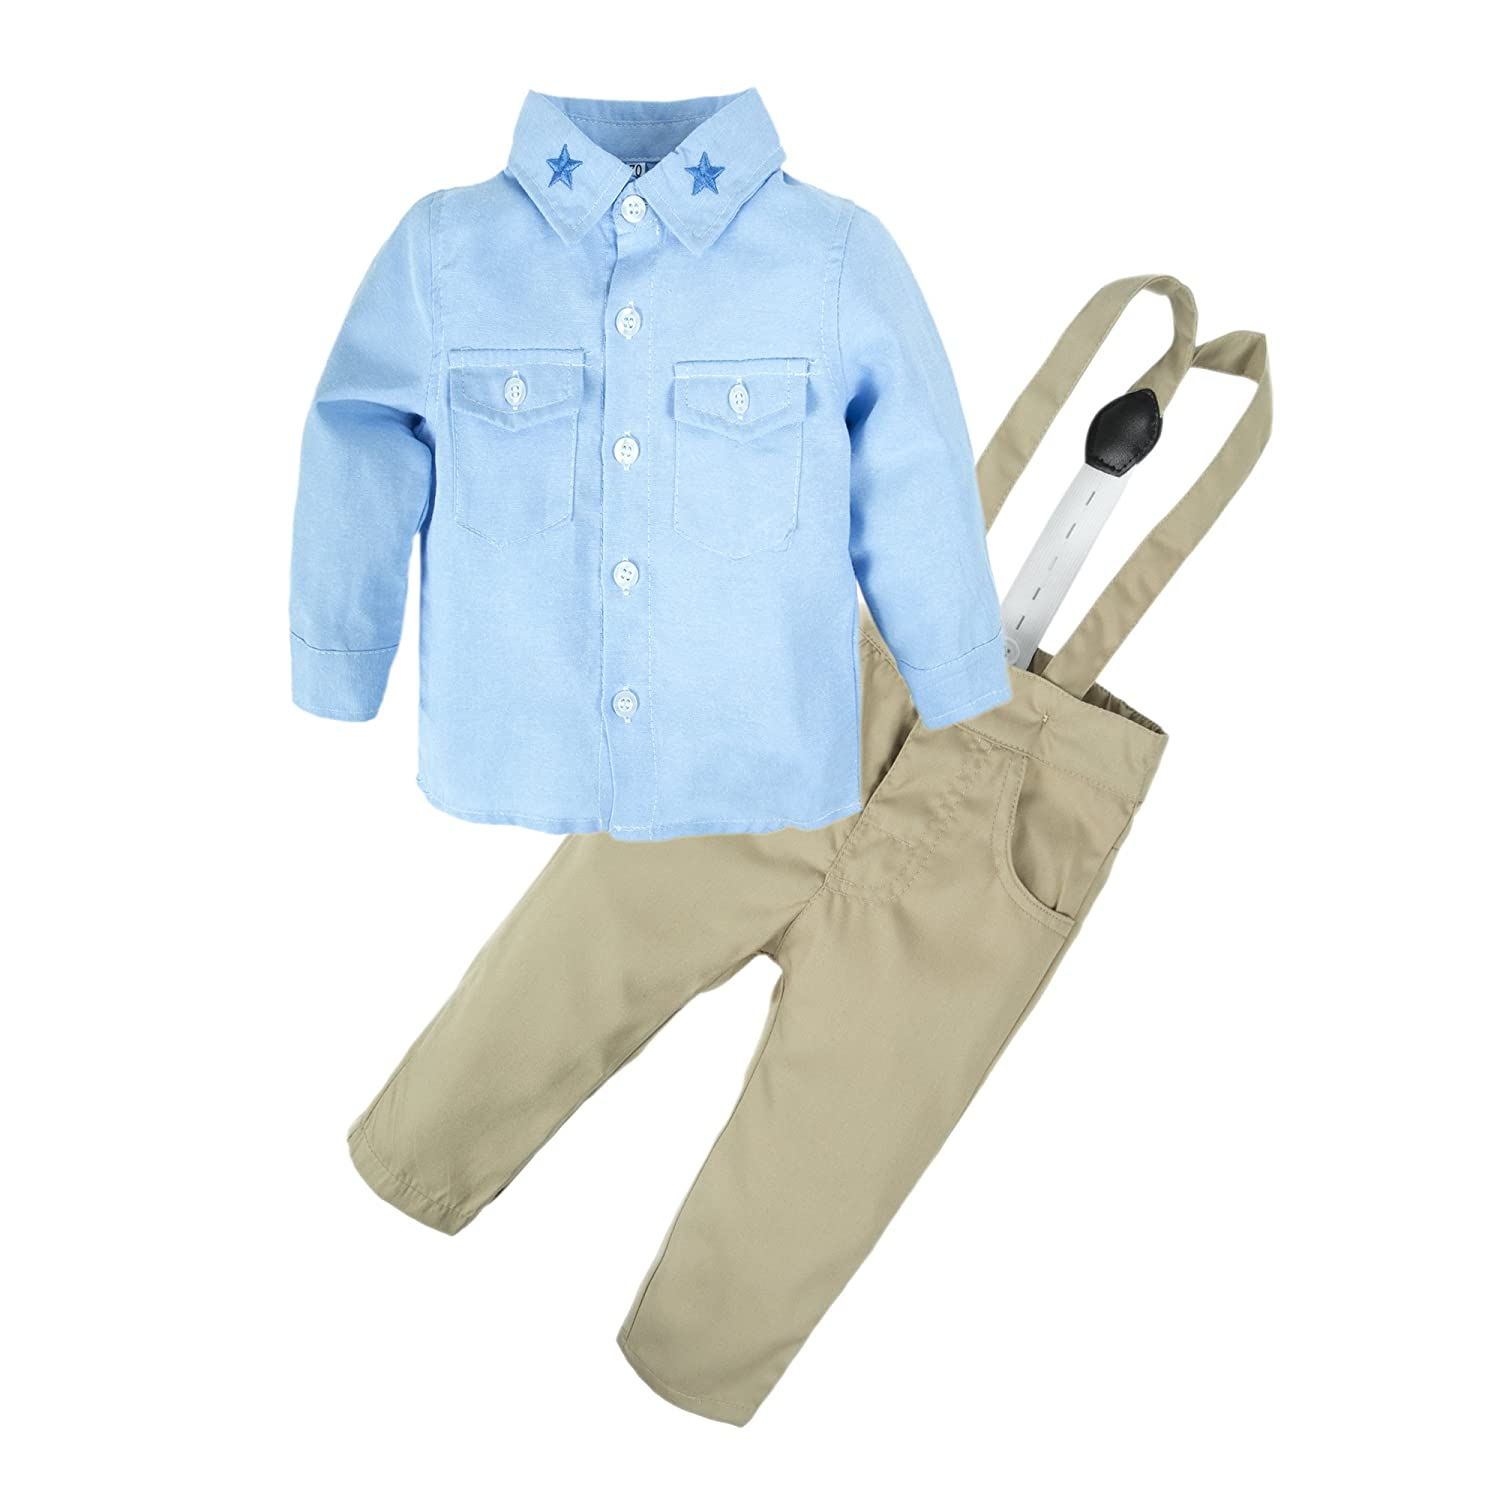 BIG ELEPHANT Baby Boys' 2 Piece Pants Shirt Clothing Set with Suspenders E34